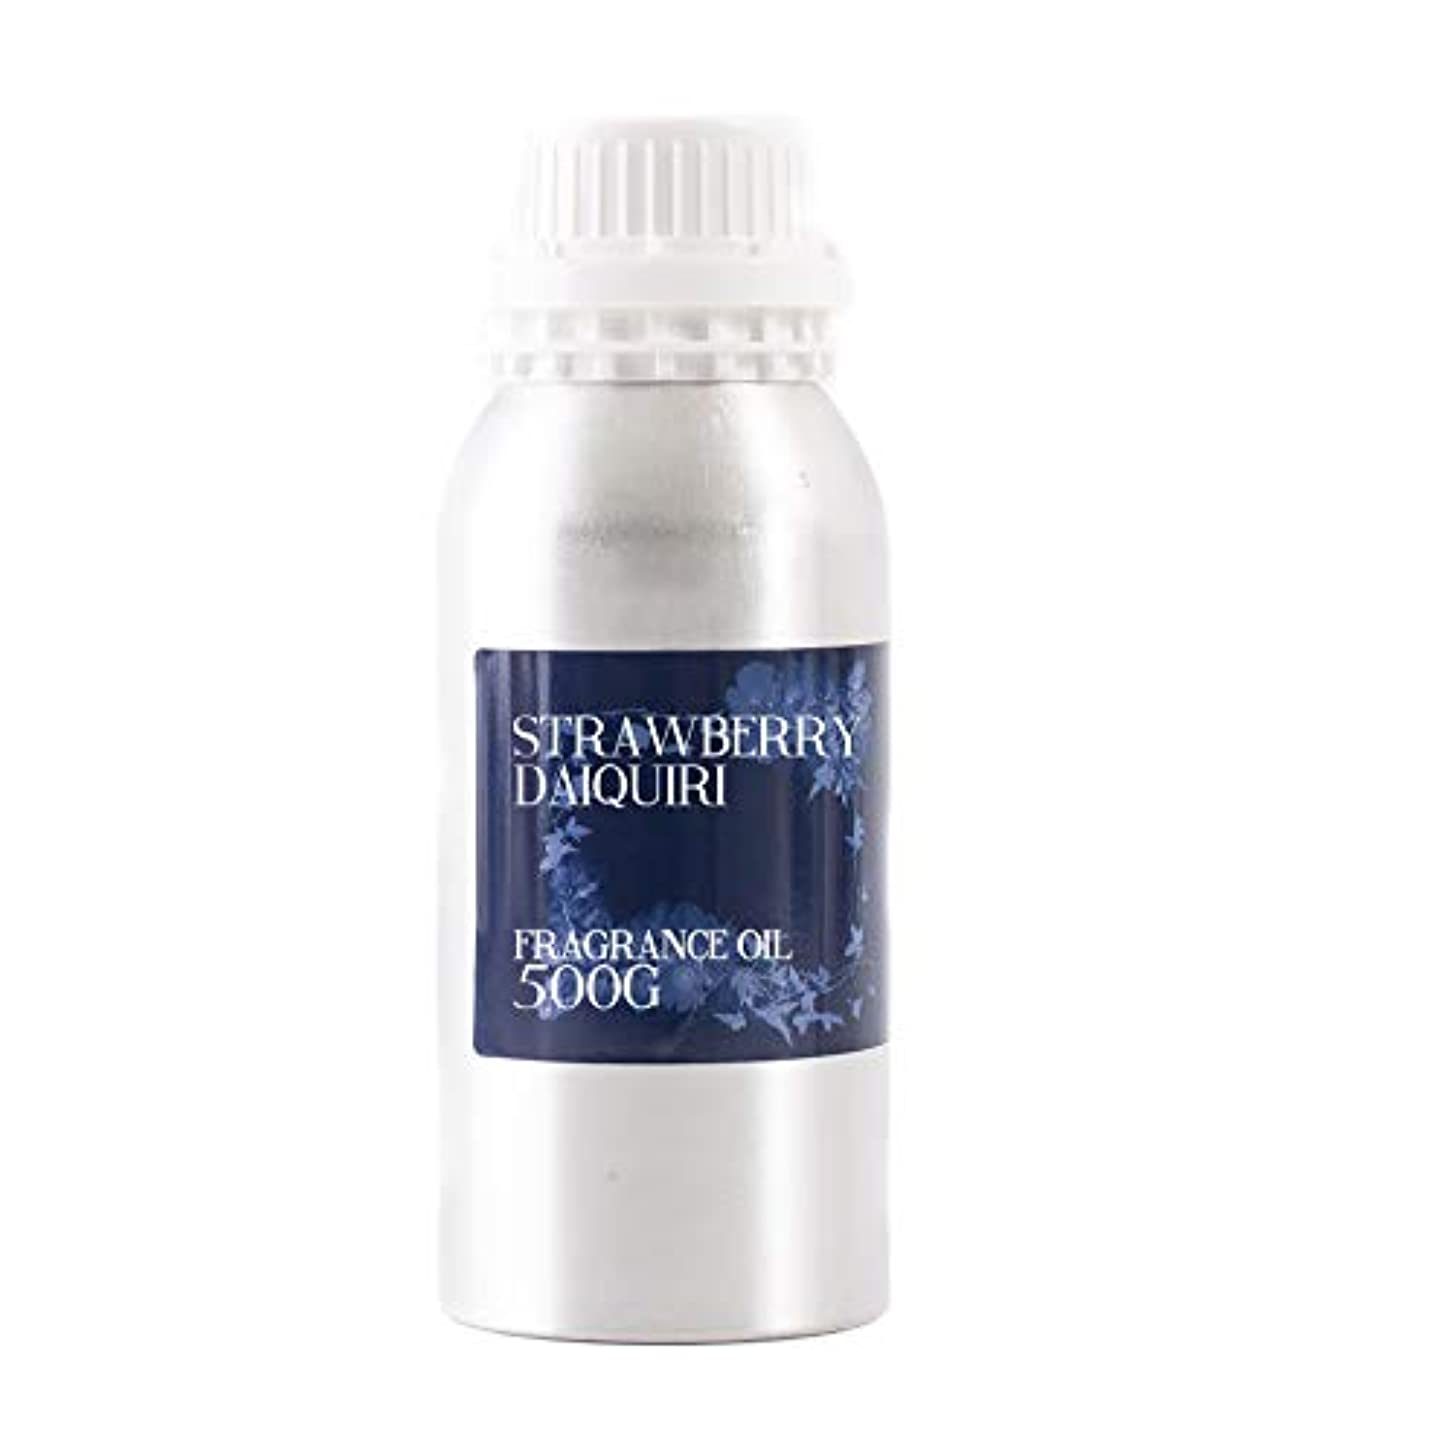 船乗り治安判事製油所Mystic Moments | Strawberry Daiquiri Fragrance Oil - 500g